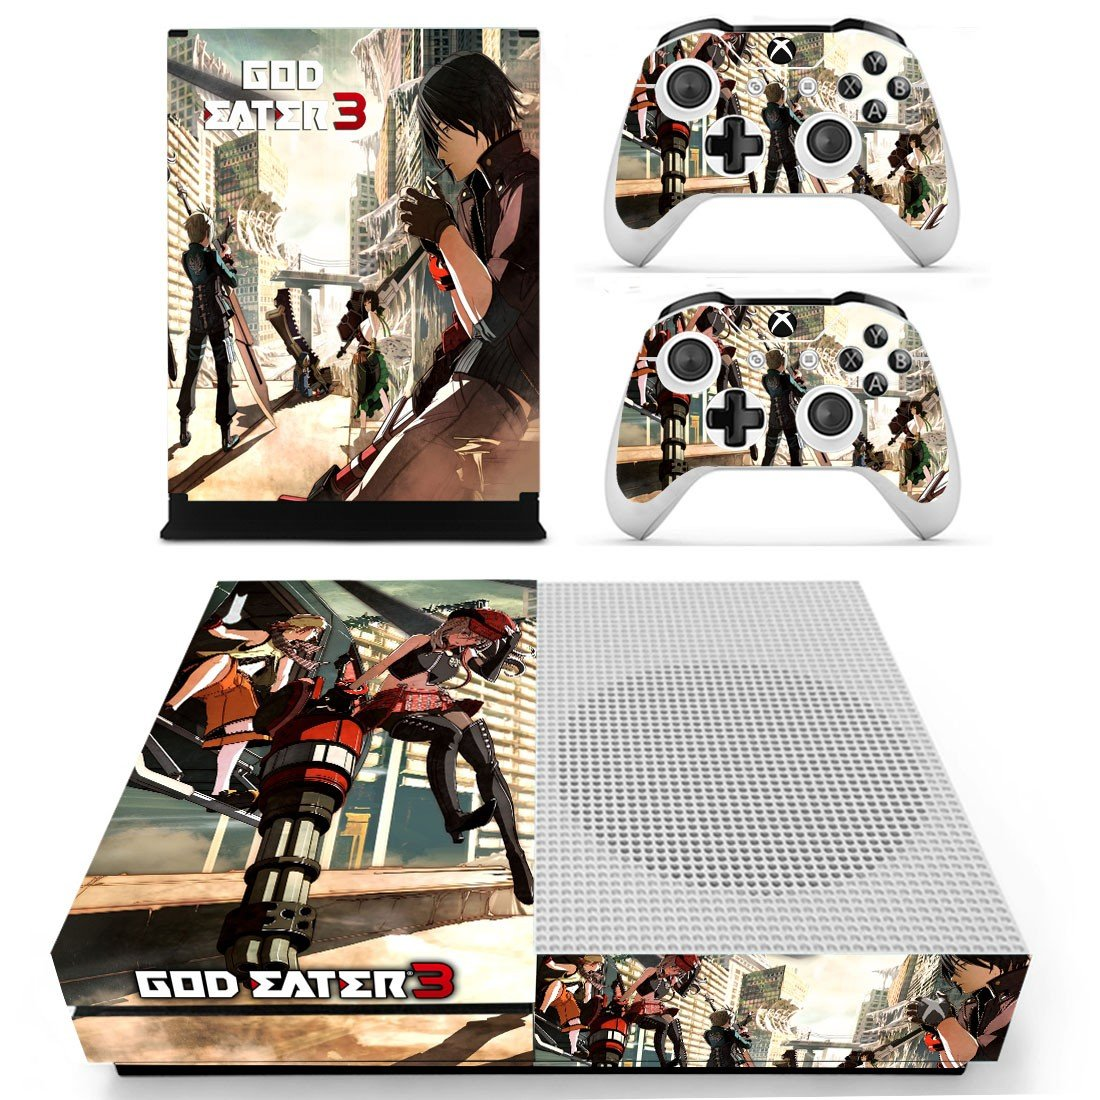 God Eater 3arts 3 decal skin sticker for Xbox One S console and controllers